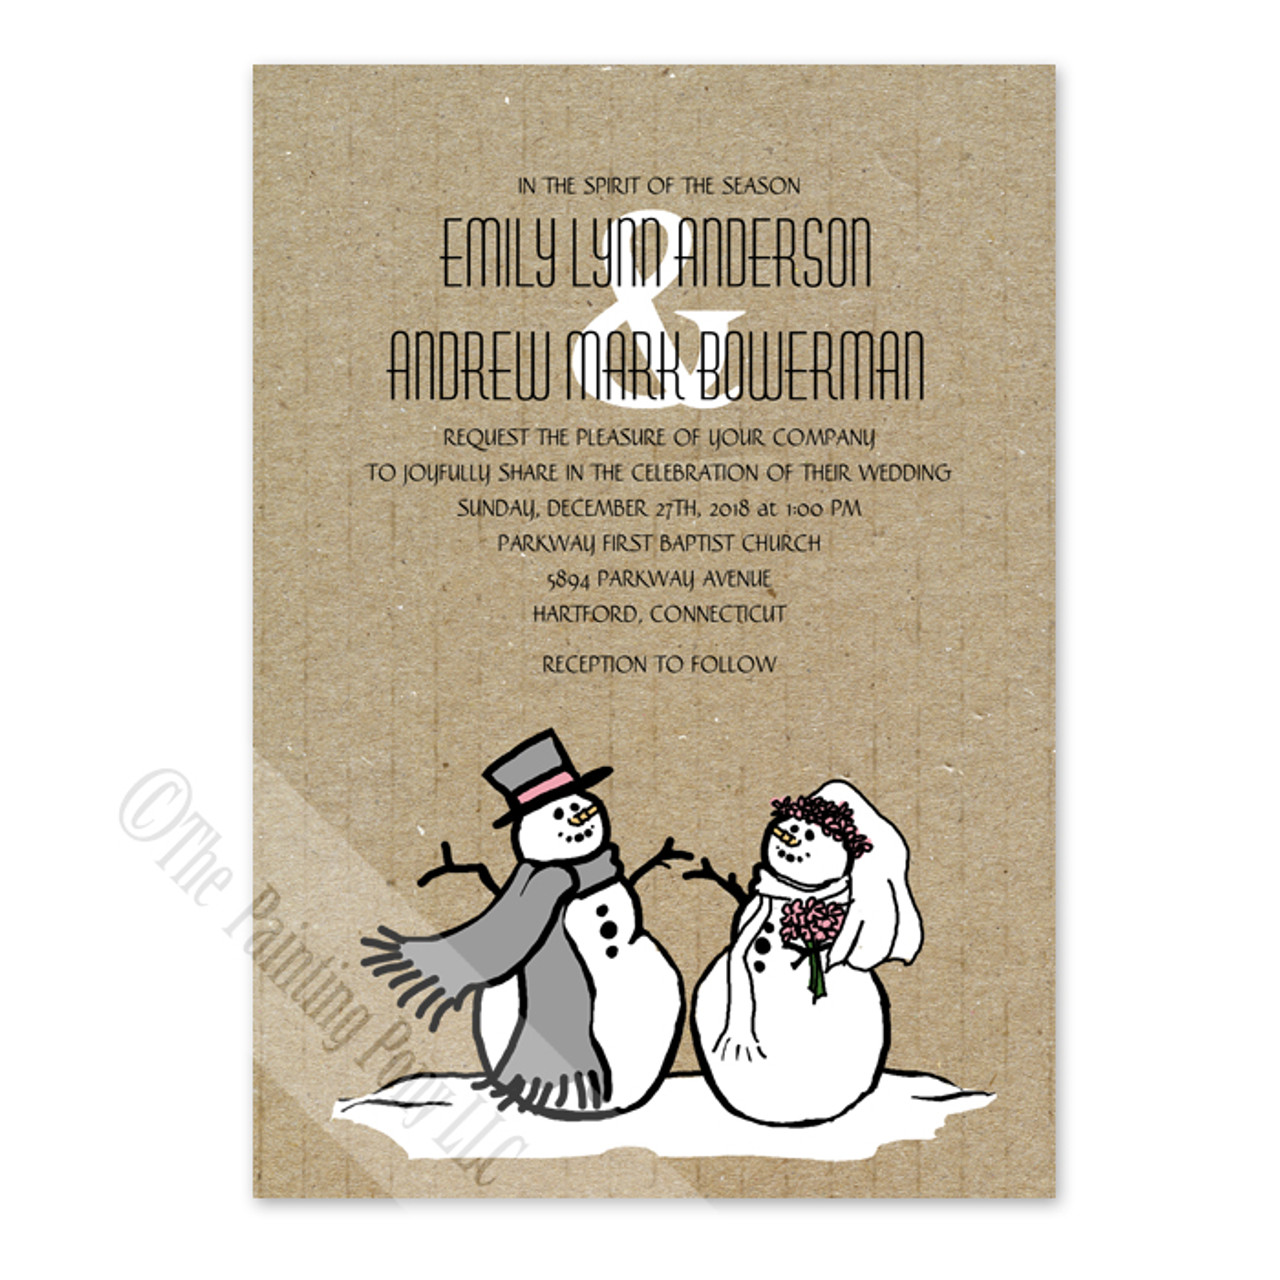 Christmas Wedding Invitations.Snowman And Bride Christmas Wedding Invitation 10 Pk